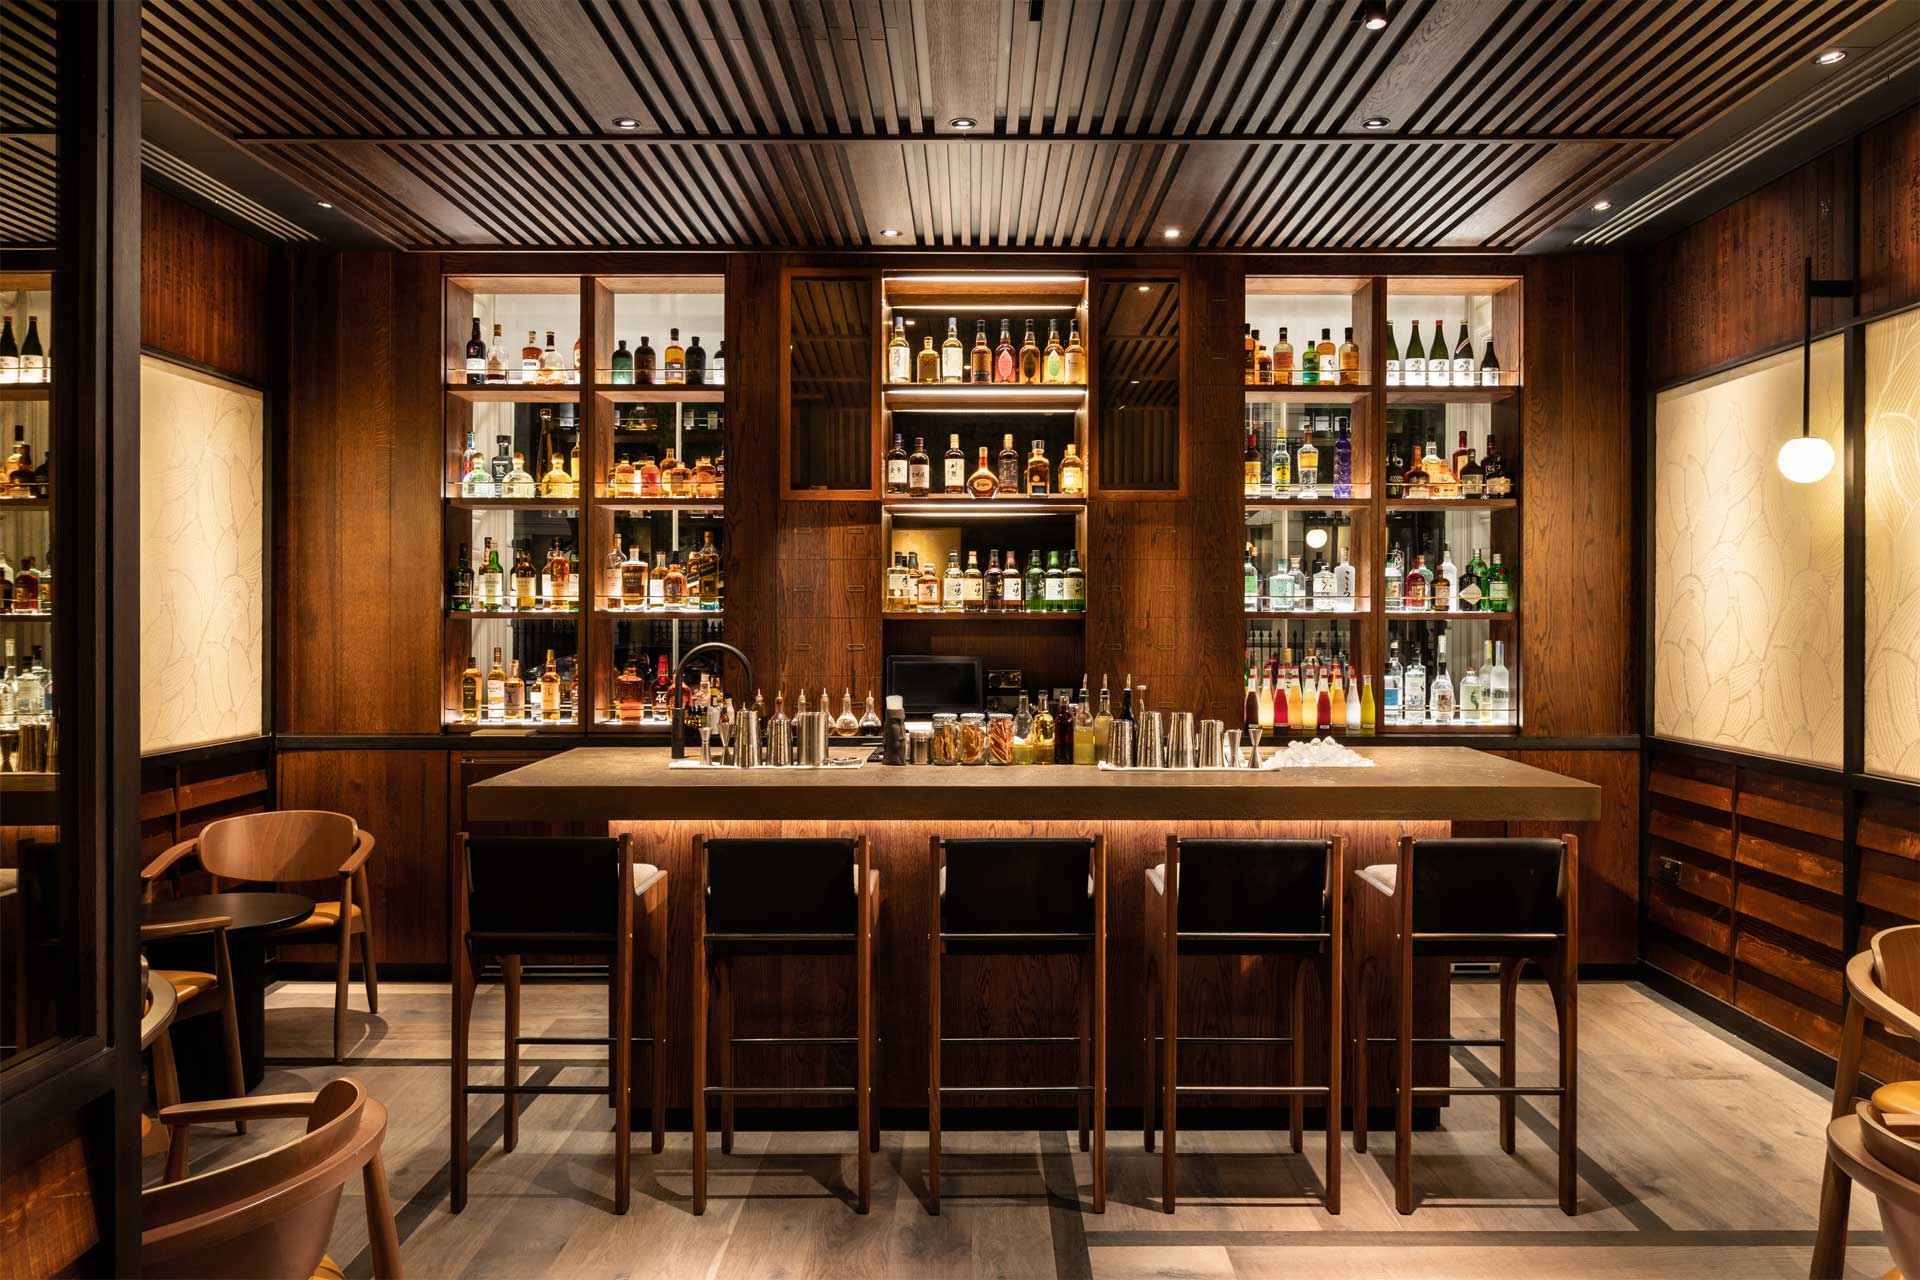 The Malt Lounge & Bar at The Prince Akatoki in London